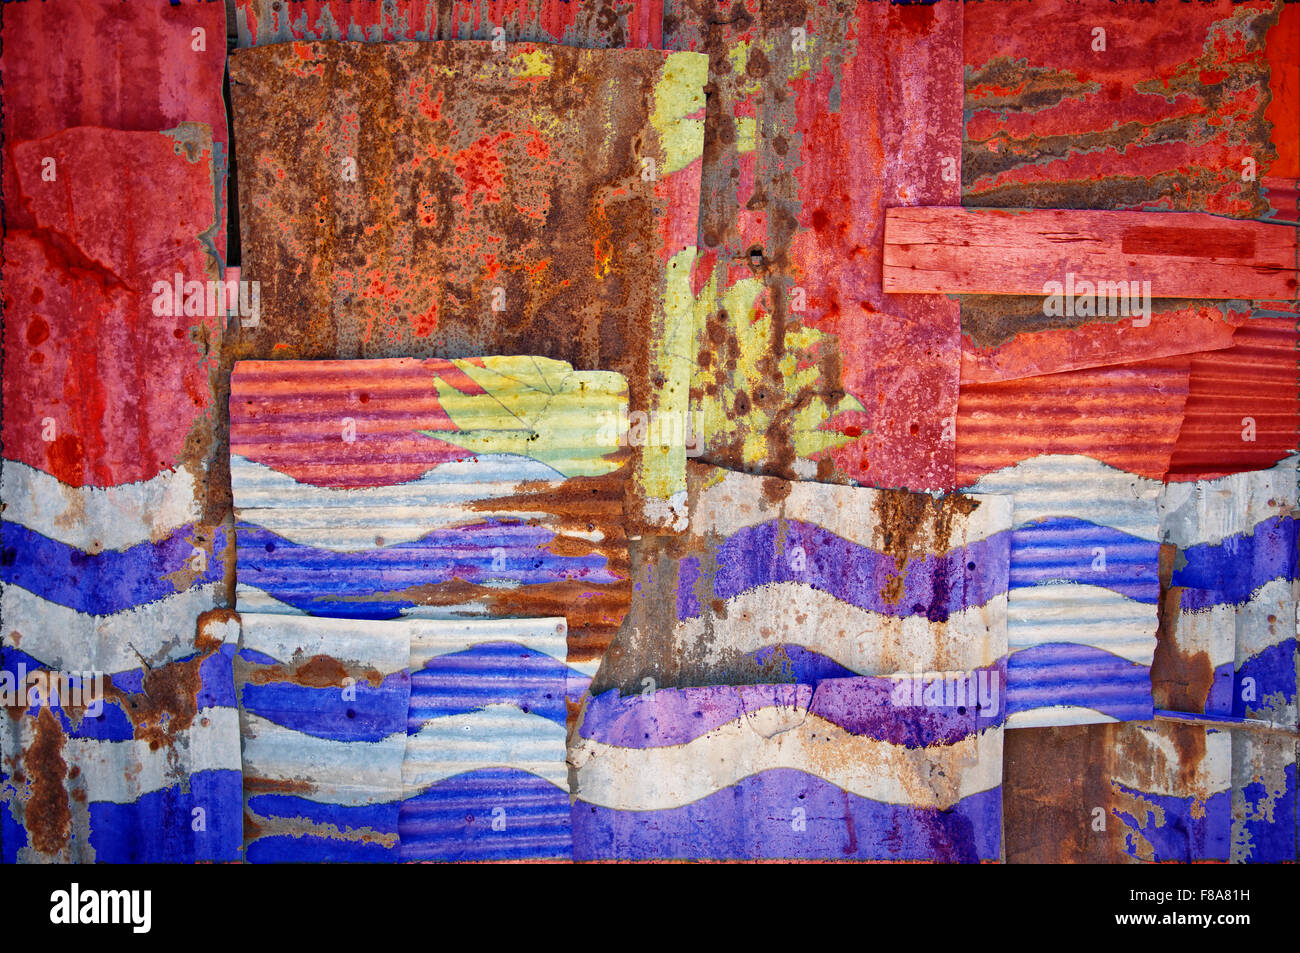 An abstract background image of the flag of Kiribati painted on to rusty corrugated iron sheets overlapping to form - Stock Image